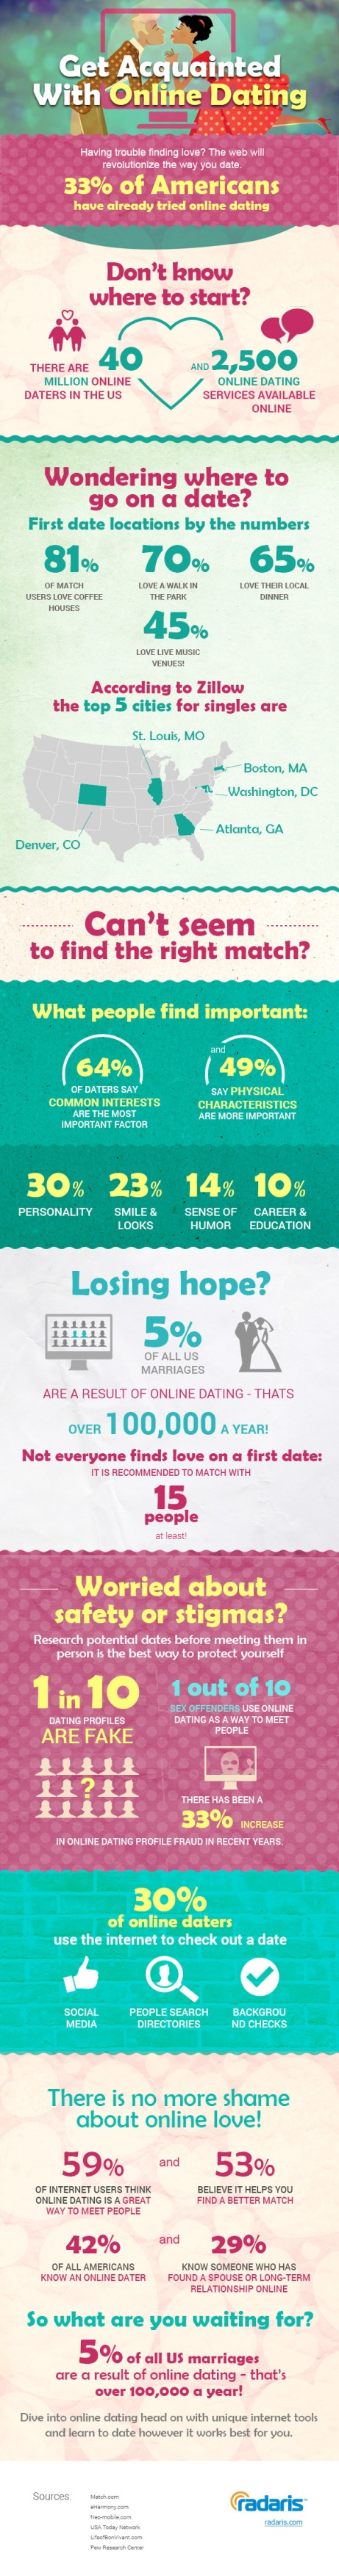 Keep online dating safe and enjoyable by researching a match before a first date using Radaris.com.